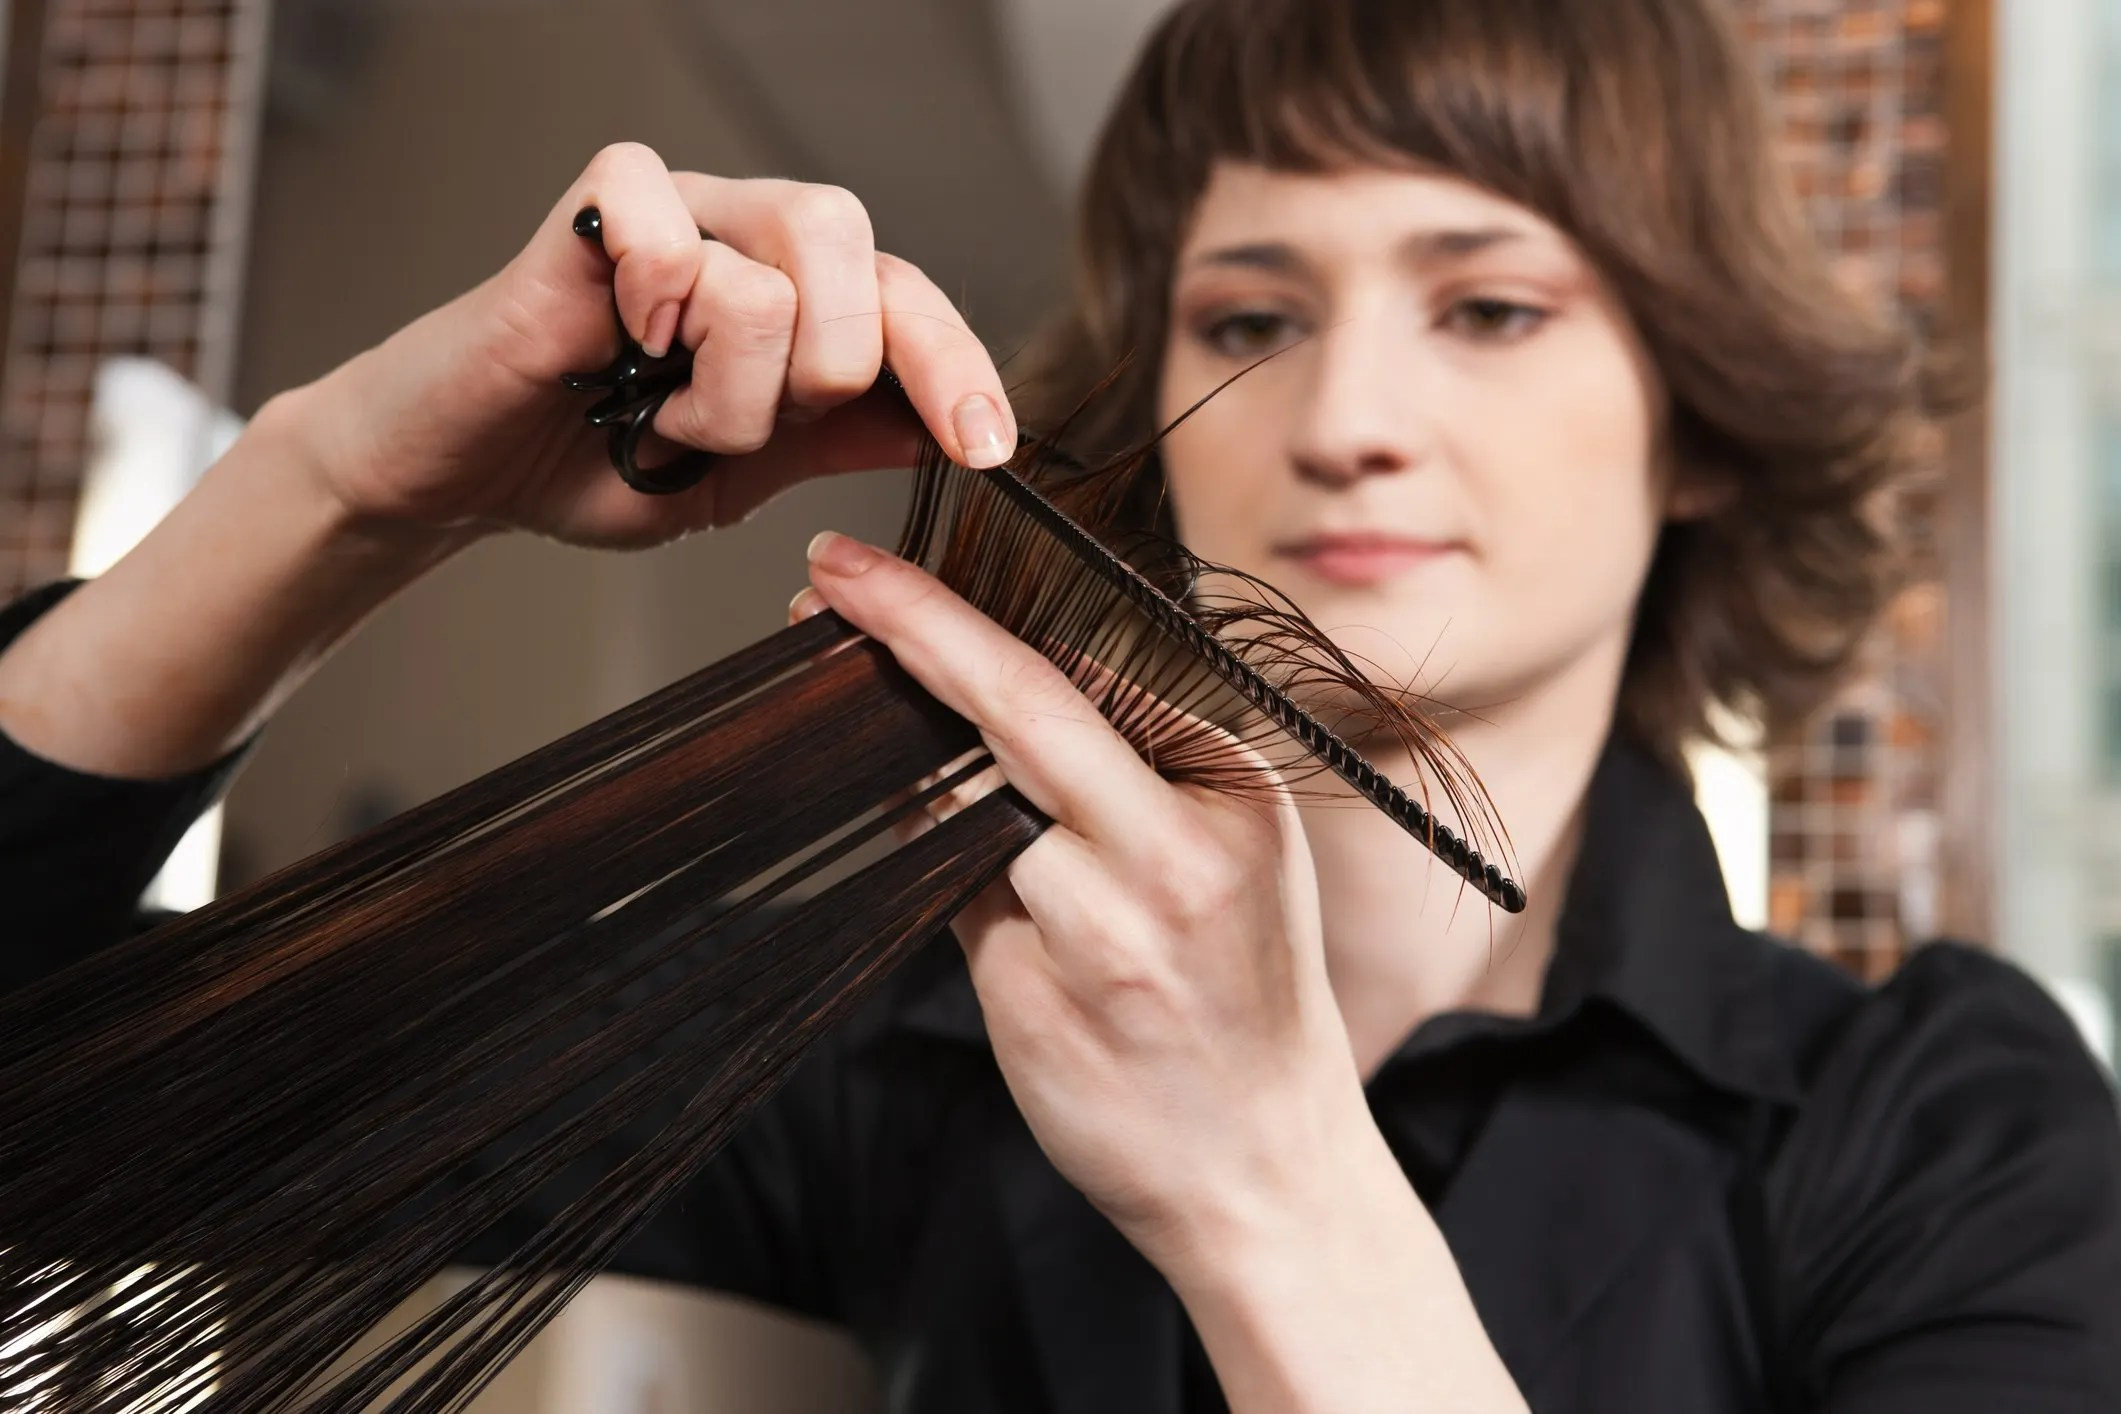 A New Illinois Law Will Teach Hairstylists To Look For